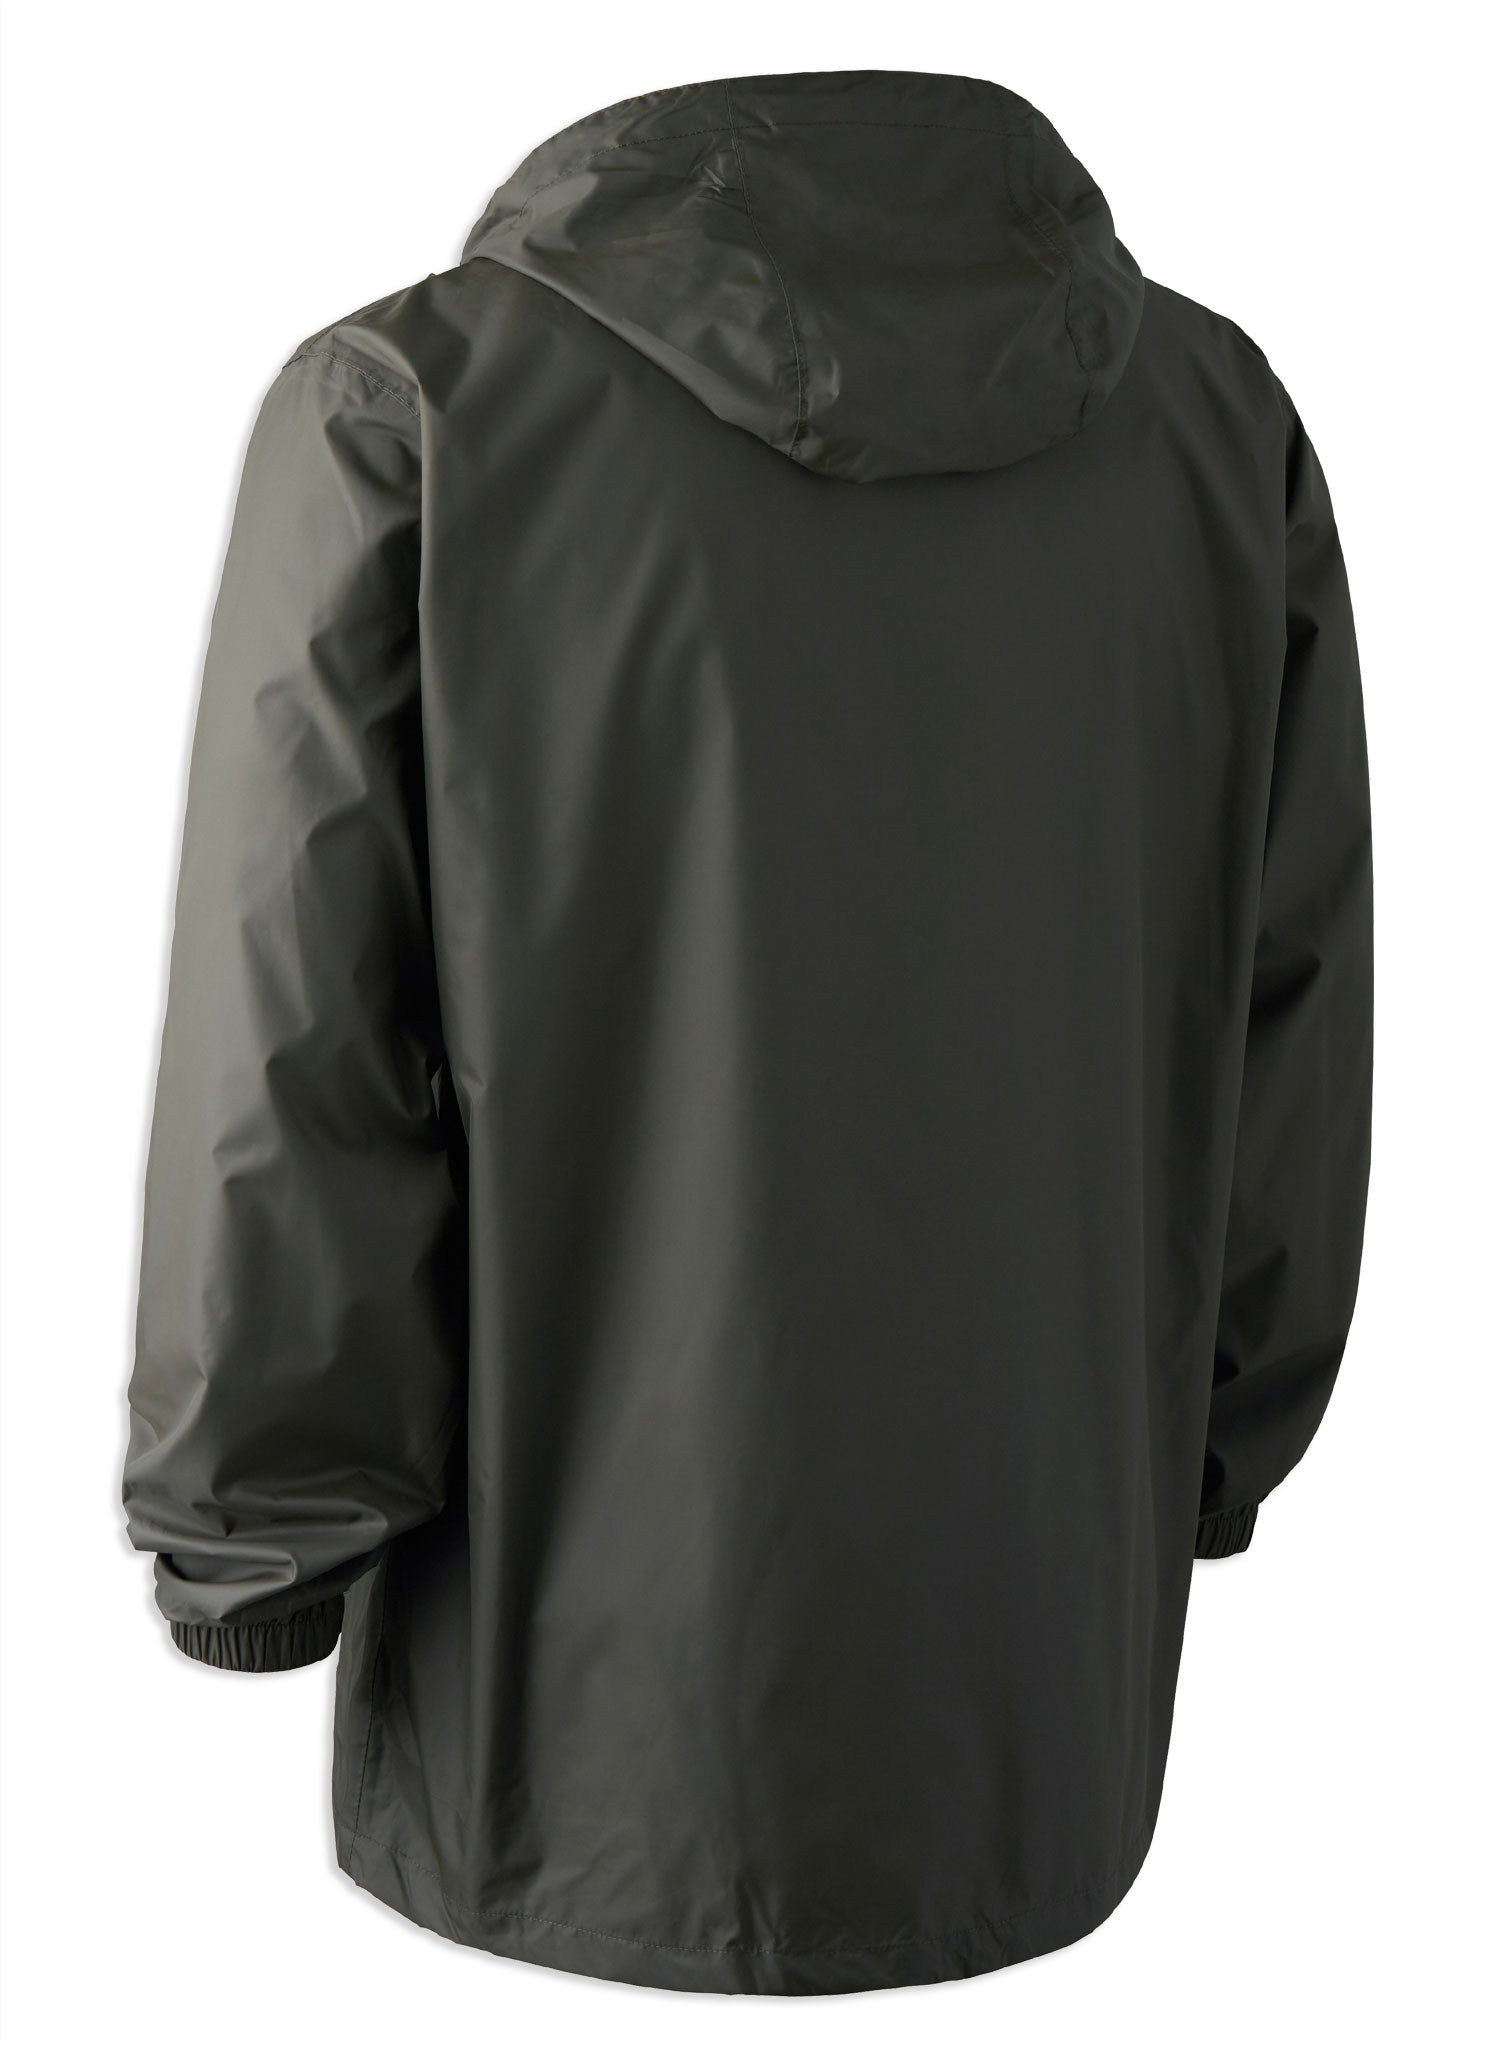 lightweight Deerhunter Survivor Packable Rain Jacket